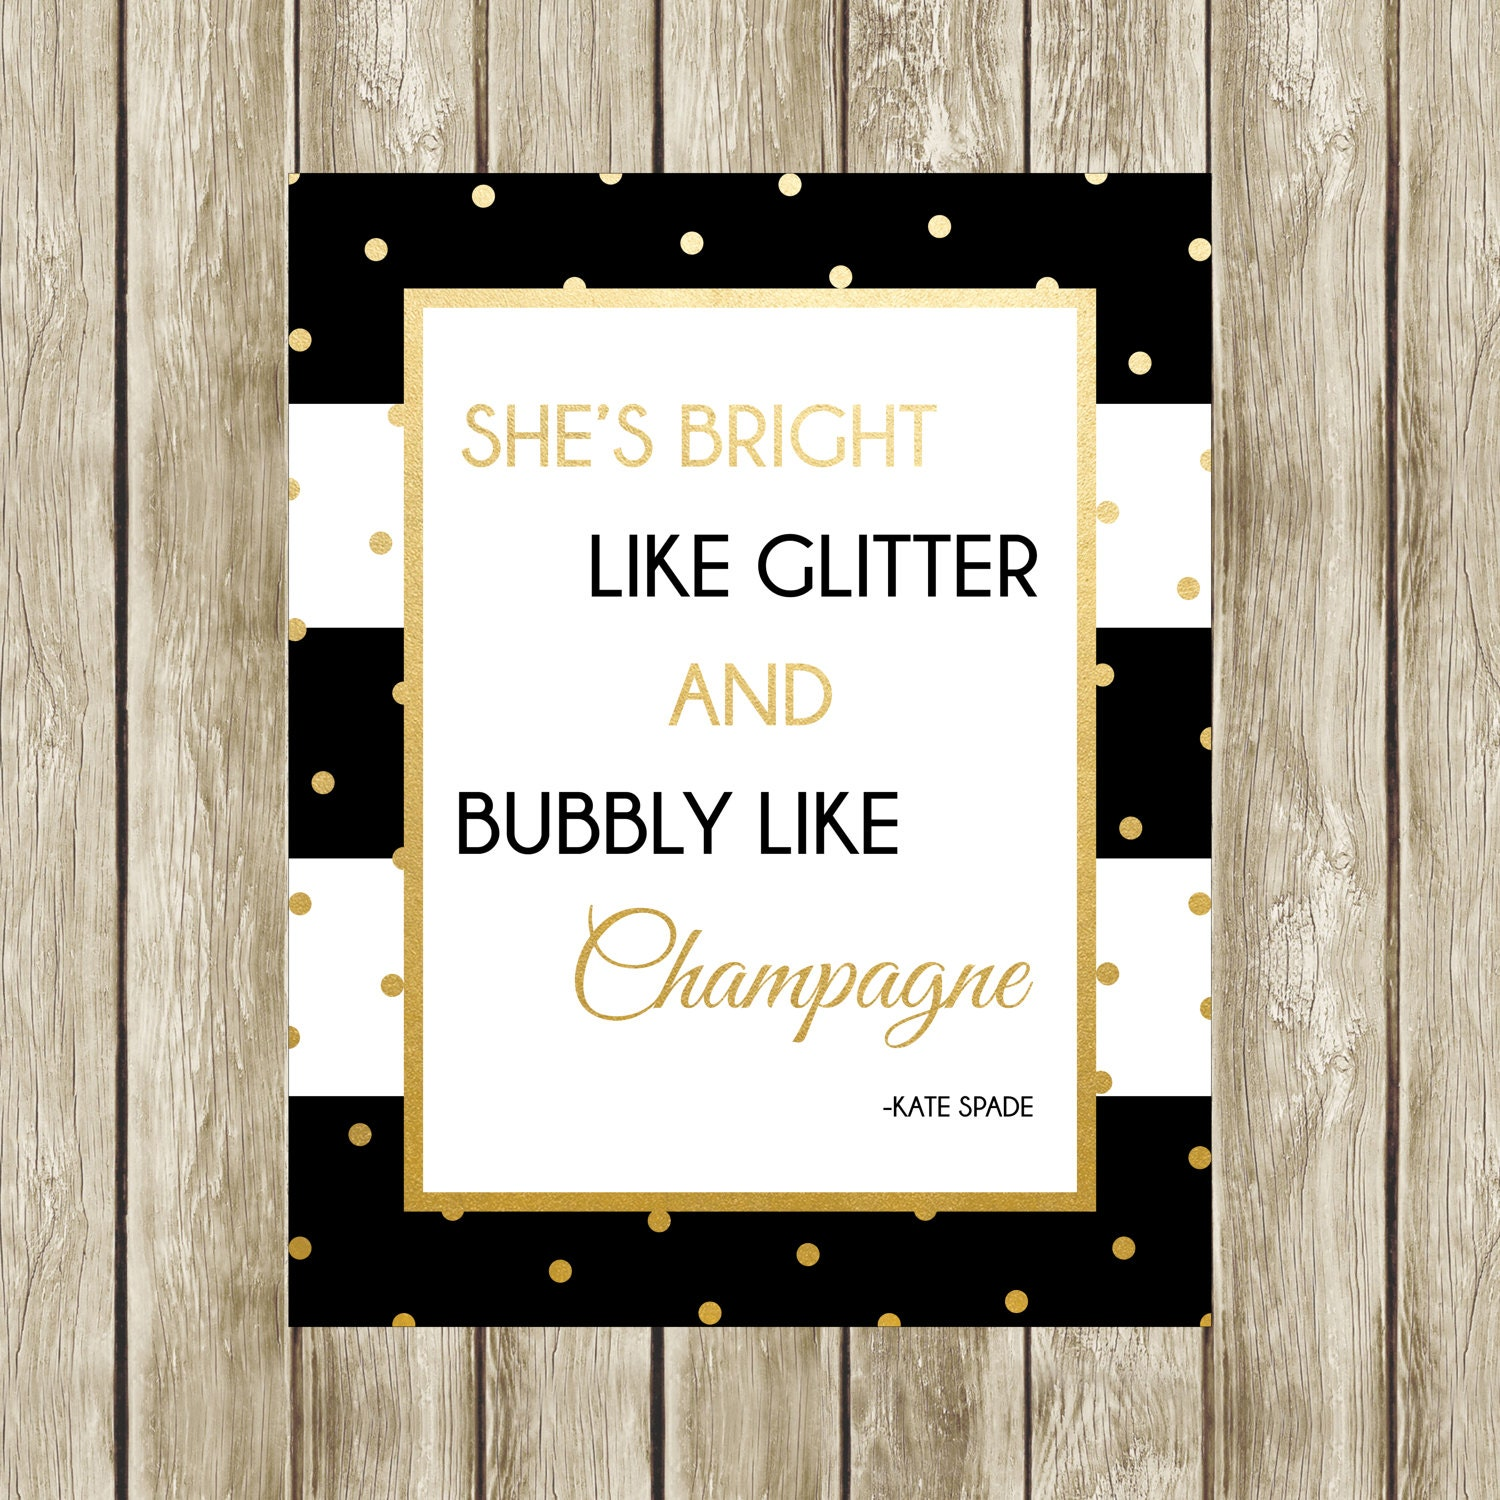 Kate Spade Quotes She's Bright Like Glitter Kate Spade Quote Kate Spade